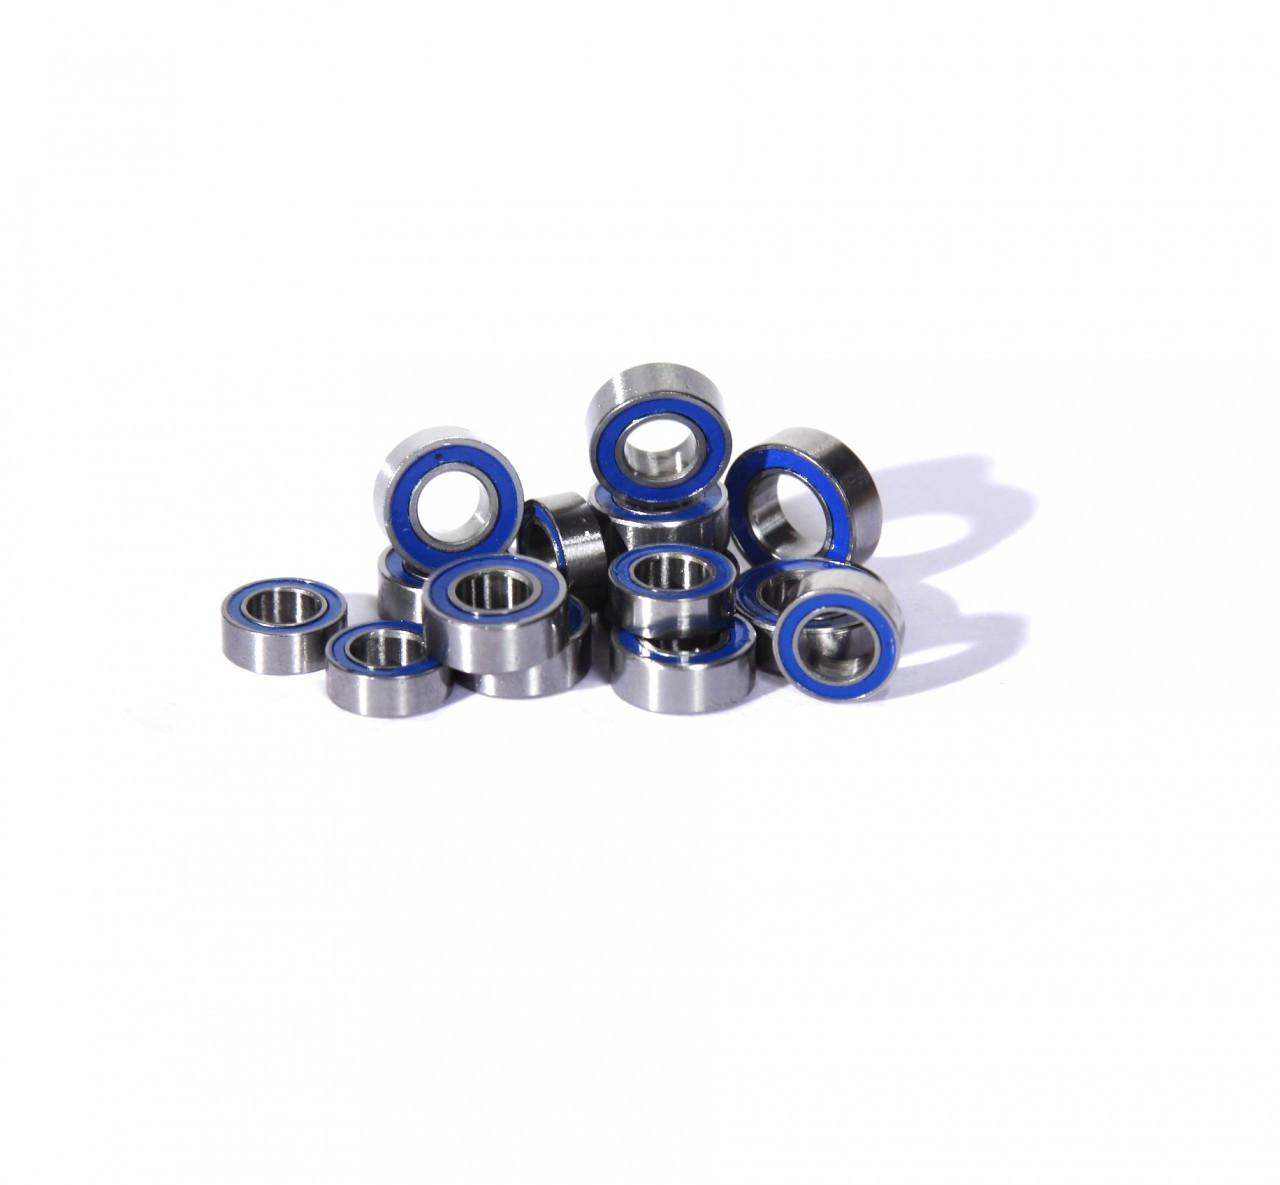 Team Losi mini-T and mini-Desert truck 15 PC full replacement bearing kit!